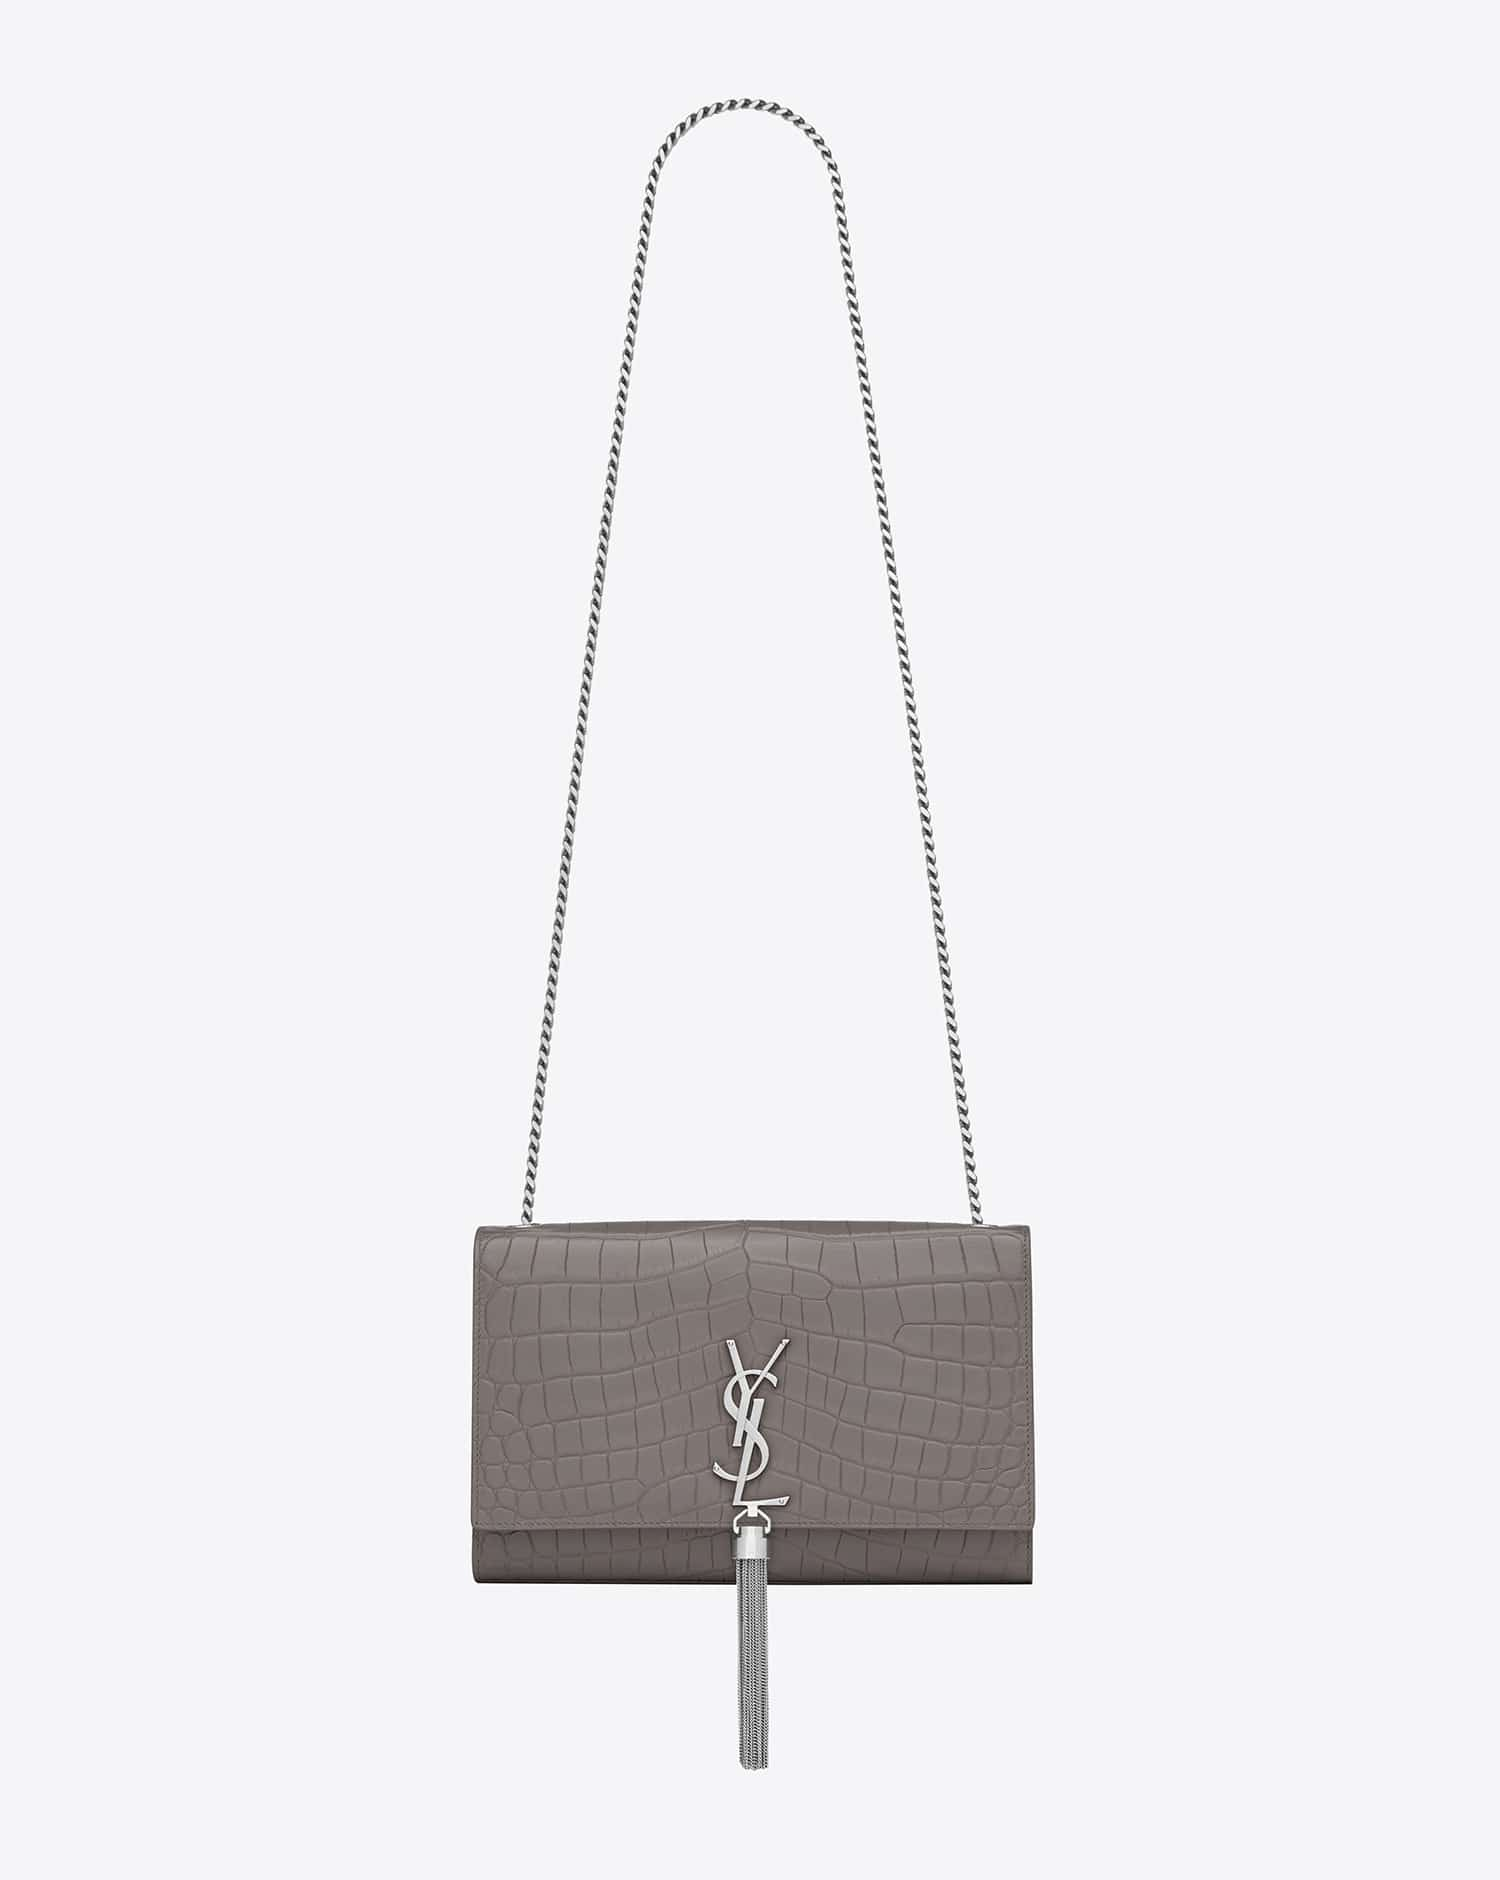 Saint Laurent Fall Winter 2015 Bag Collection Featuring